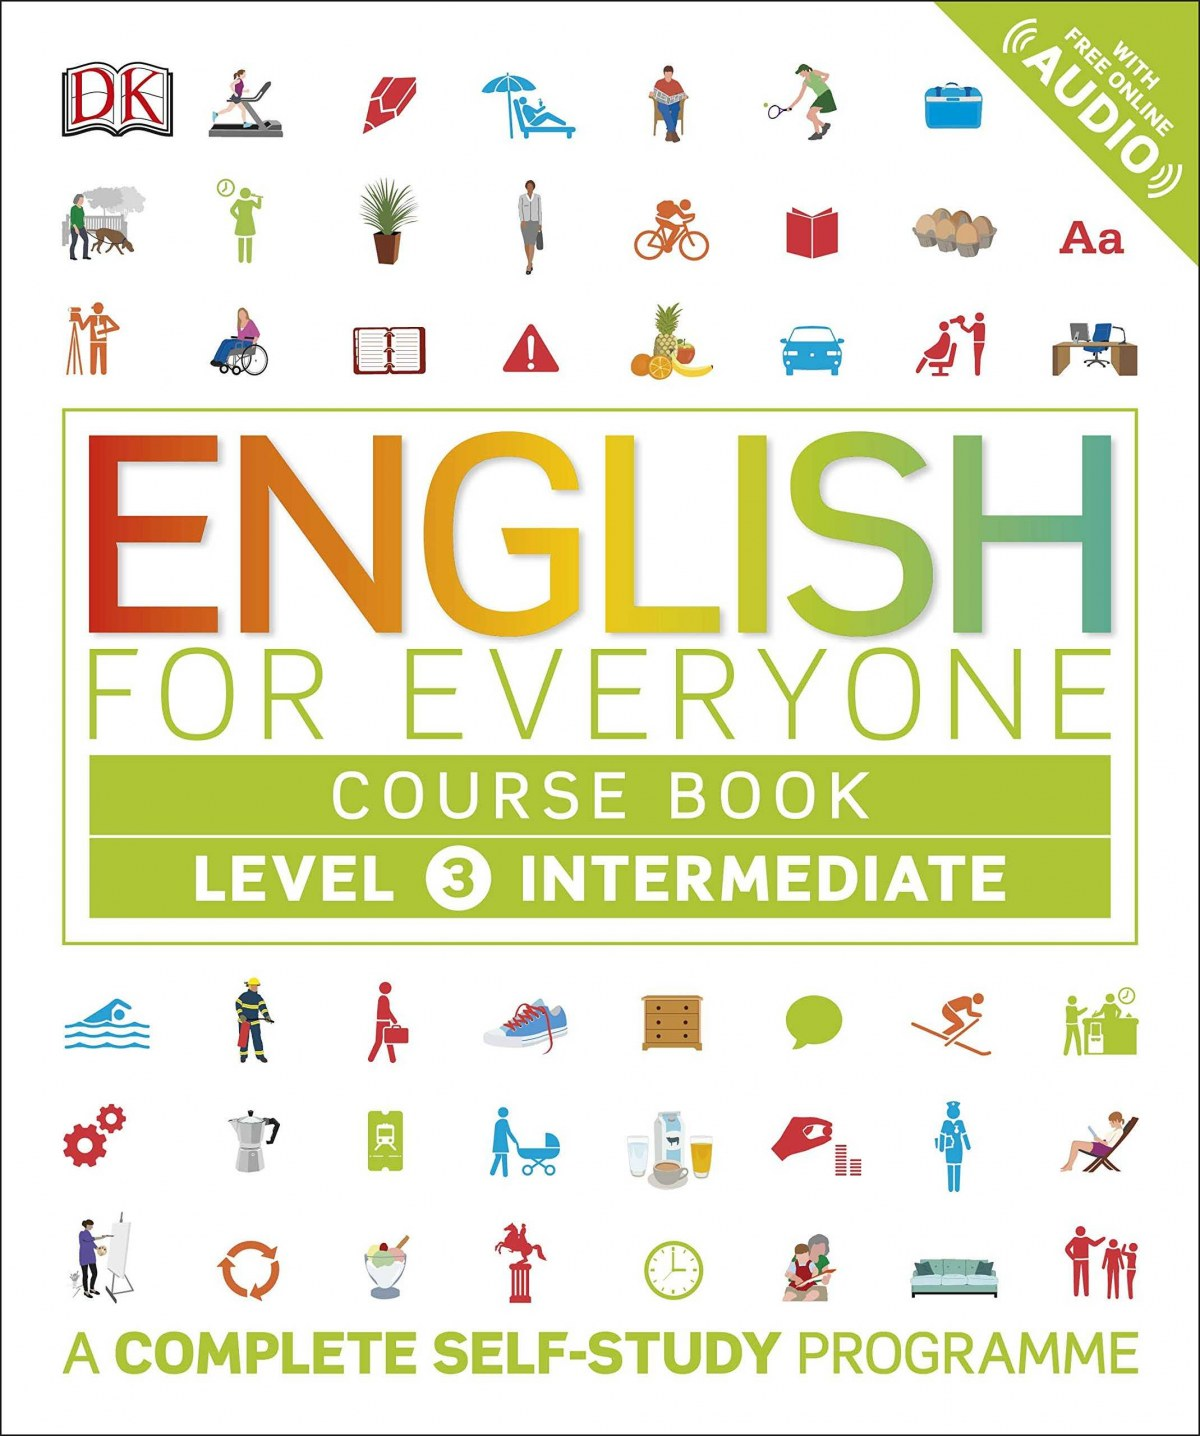 For everyone course book level 3 intermedi